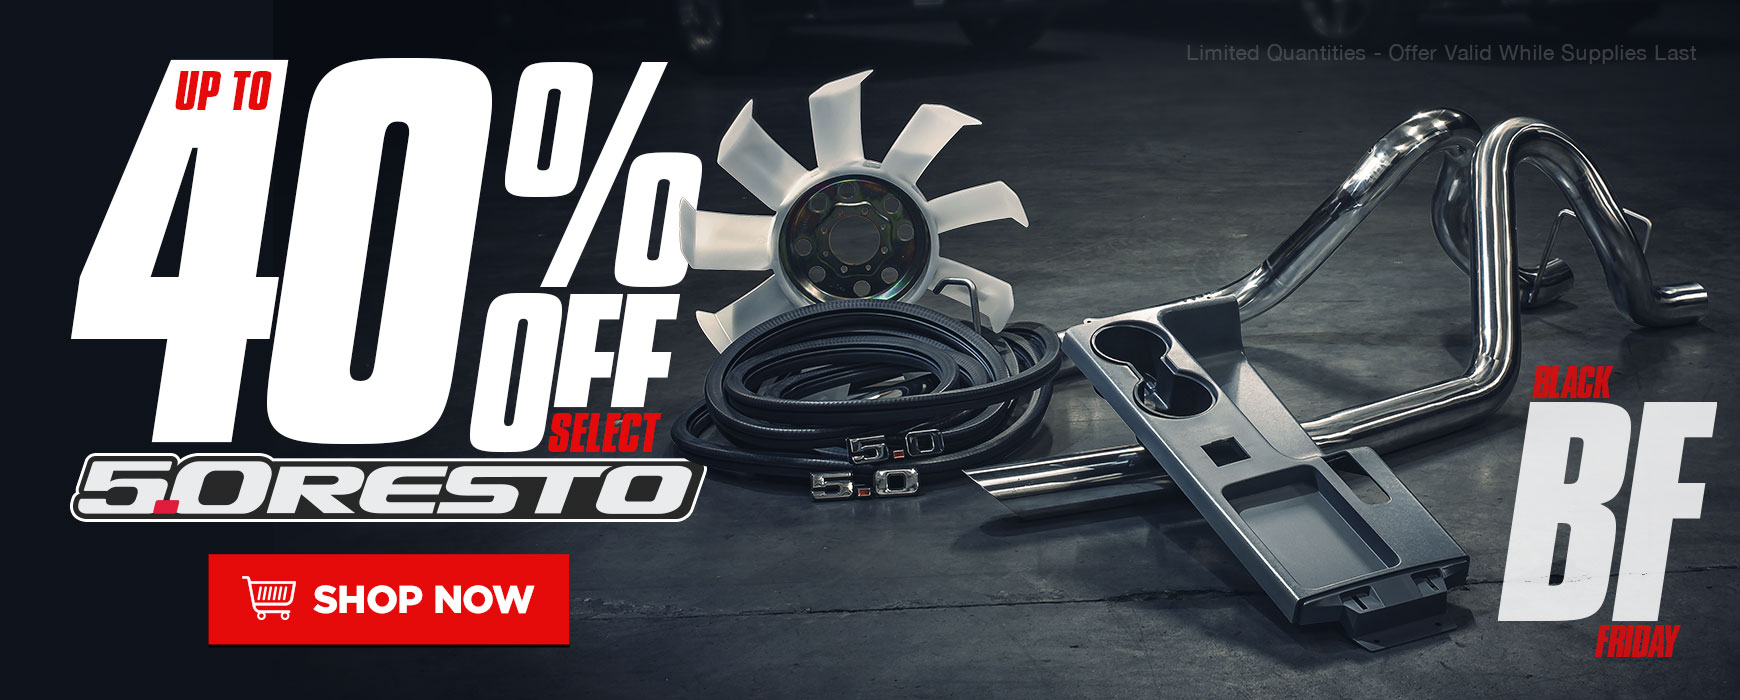 Up to 40% OFF 5.0 Resto Mustang Parts